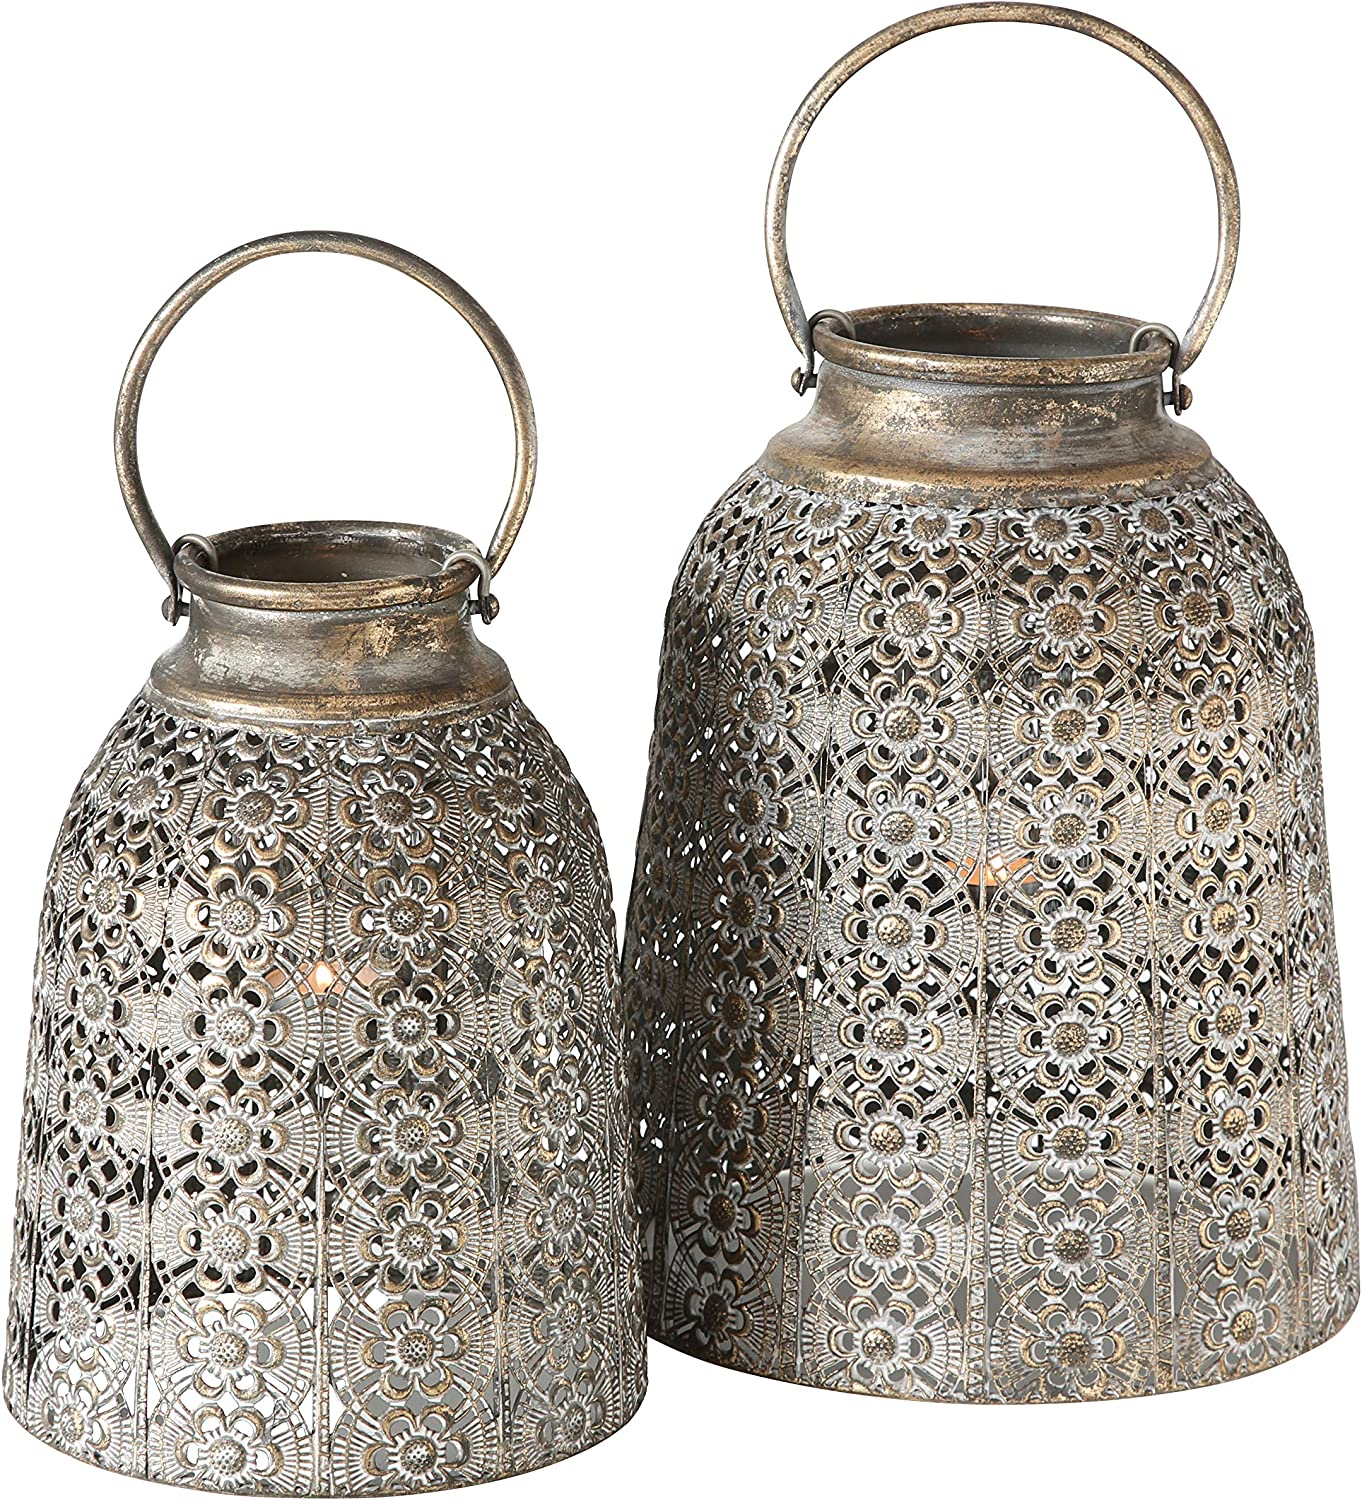 Grand Tour Temple Bell Lanterns, Set of 2, Hurricanes, Distressed Gold, Weathered, White Gray Patina, Iron, 10 1/4 and 8 1/4 Diameter Inches, Inner Floating Candle Holder and Glass, Loop Handles